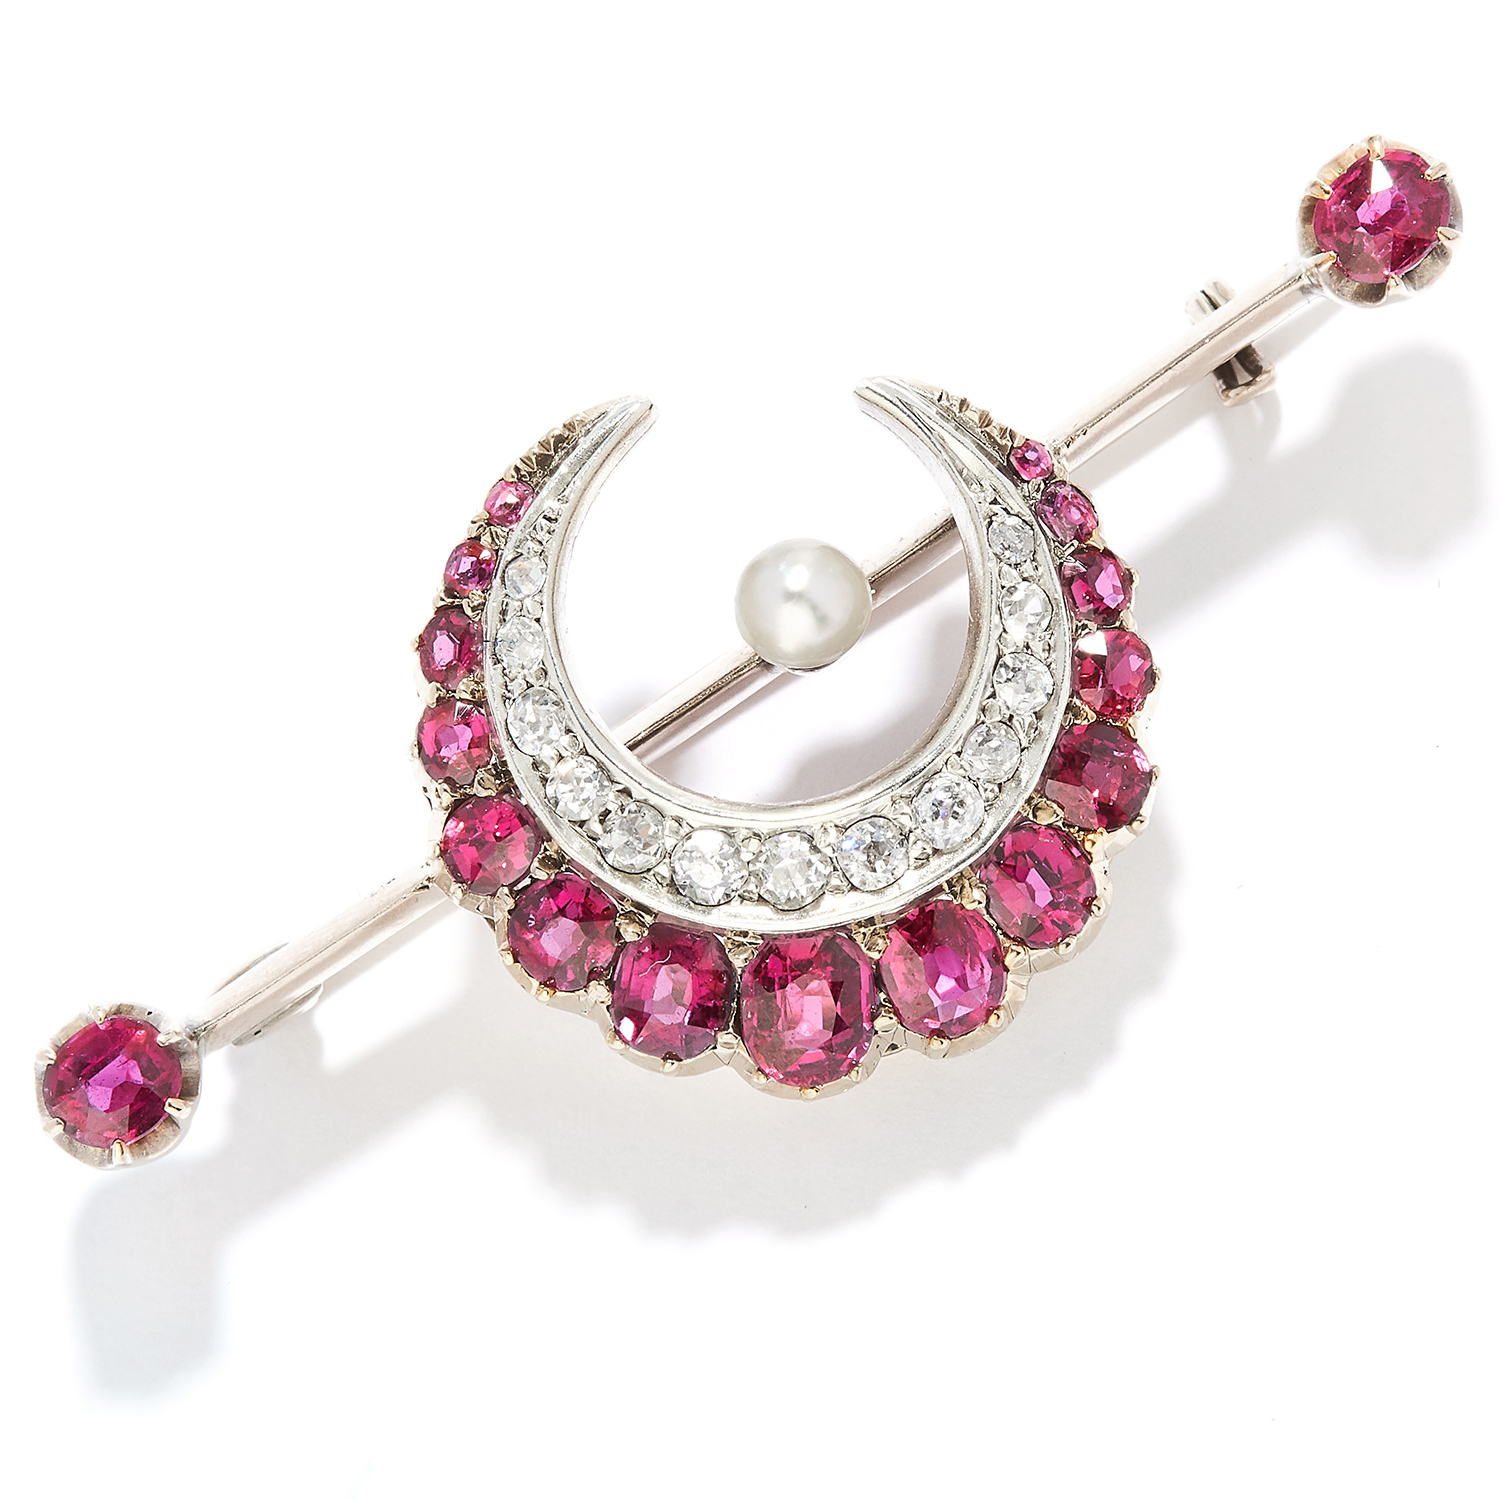 Los 47 - ANTIQUE RUBY AND DIAMOND BROOCH in yellow gold, designed as a crescent moon set